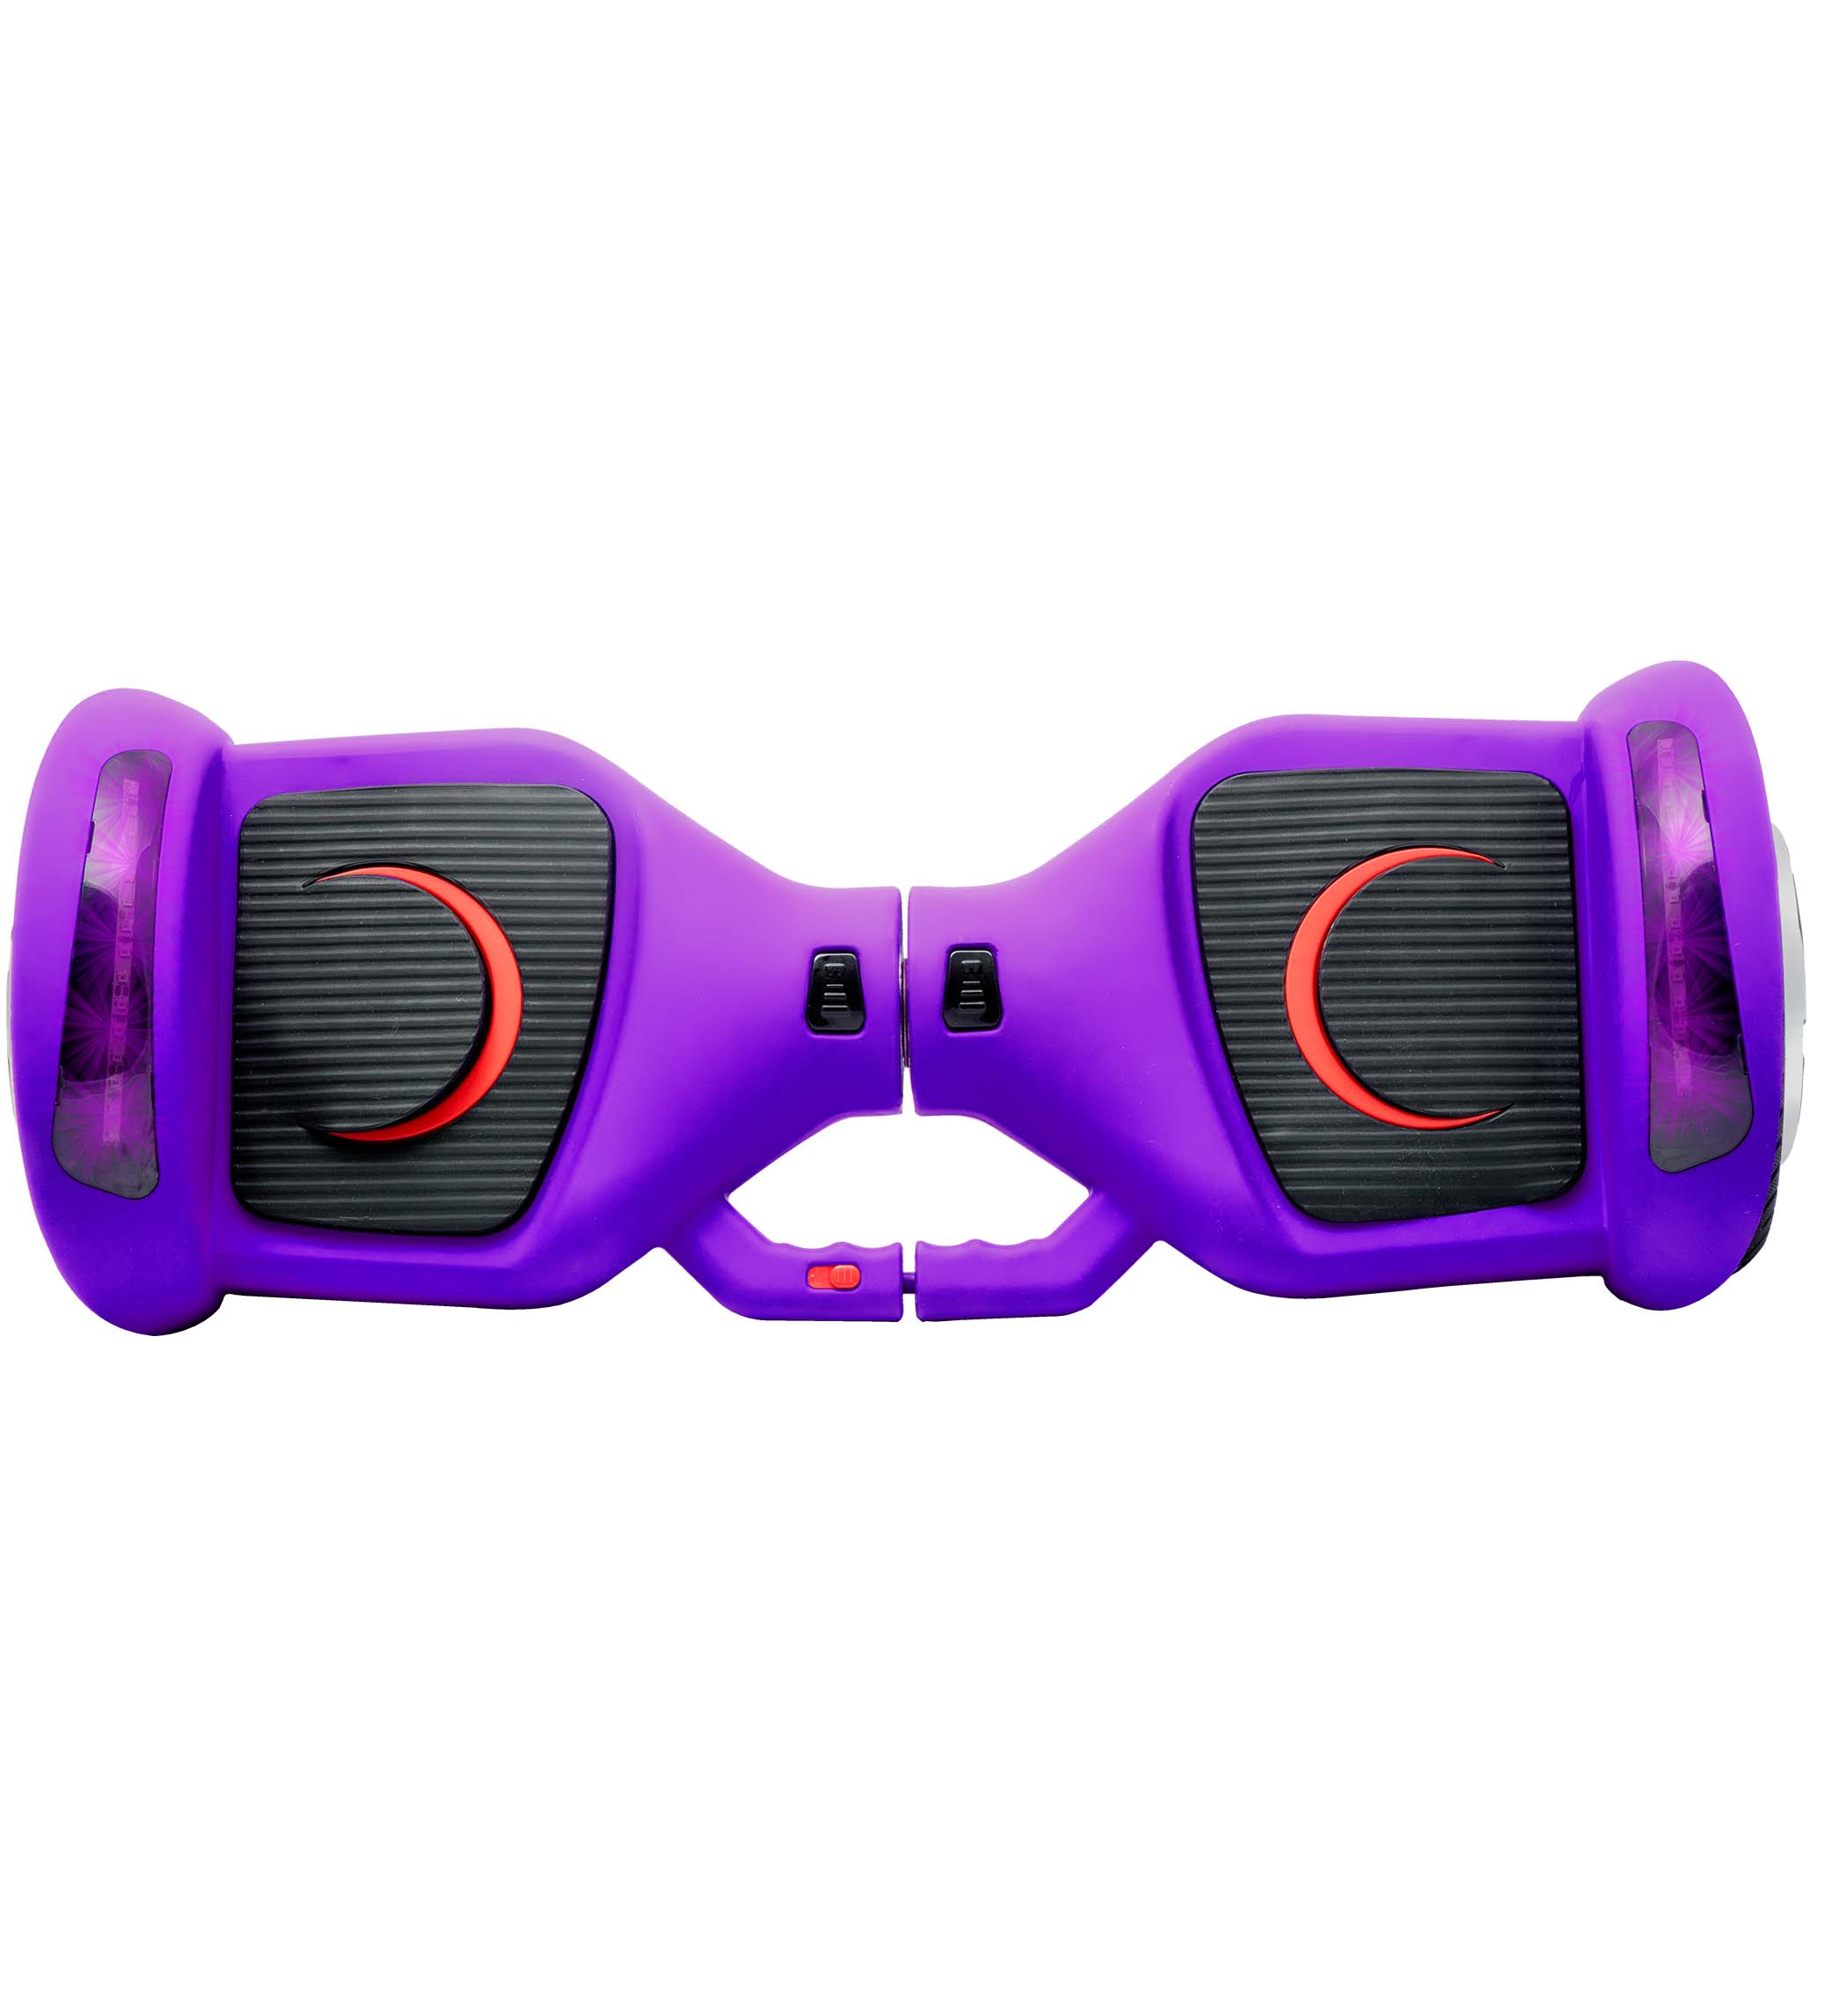 SCOOTER HOVERBOARD M7 اسکوتر برقی ام هفت